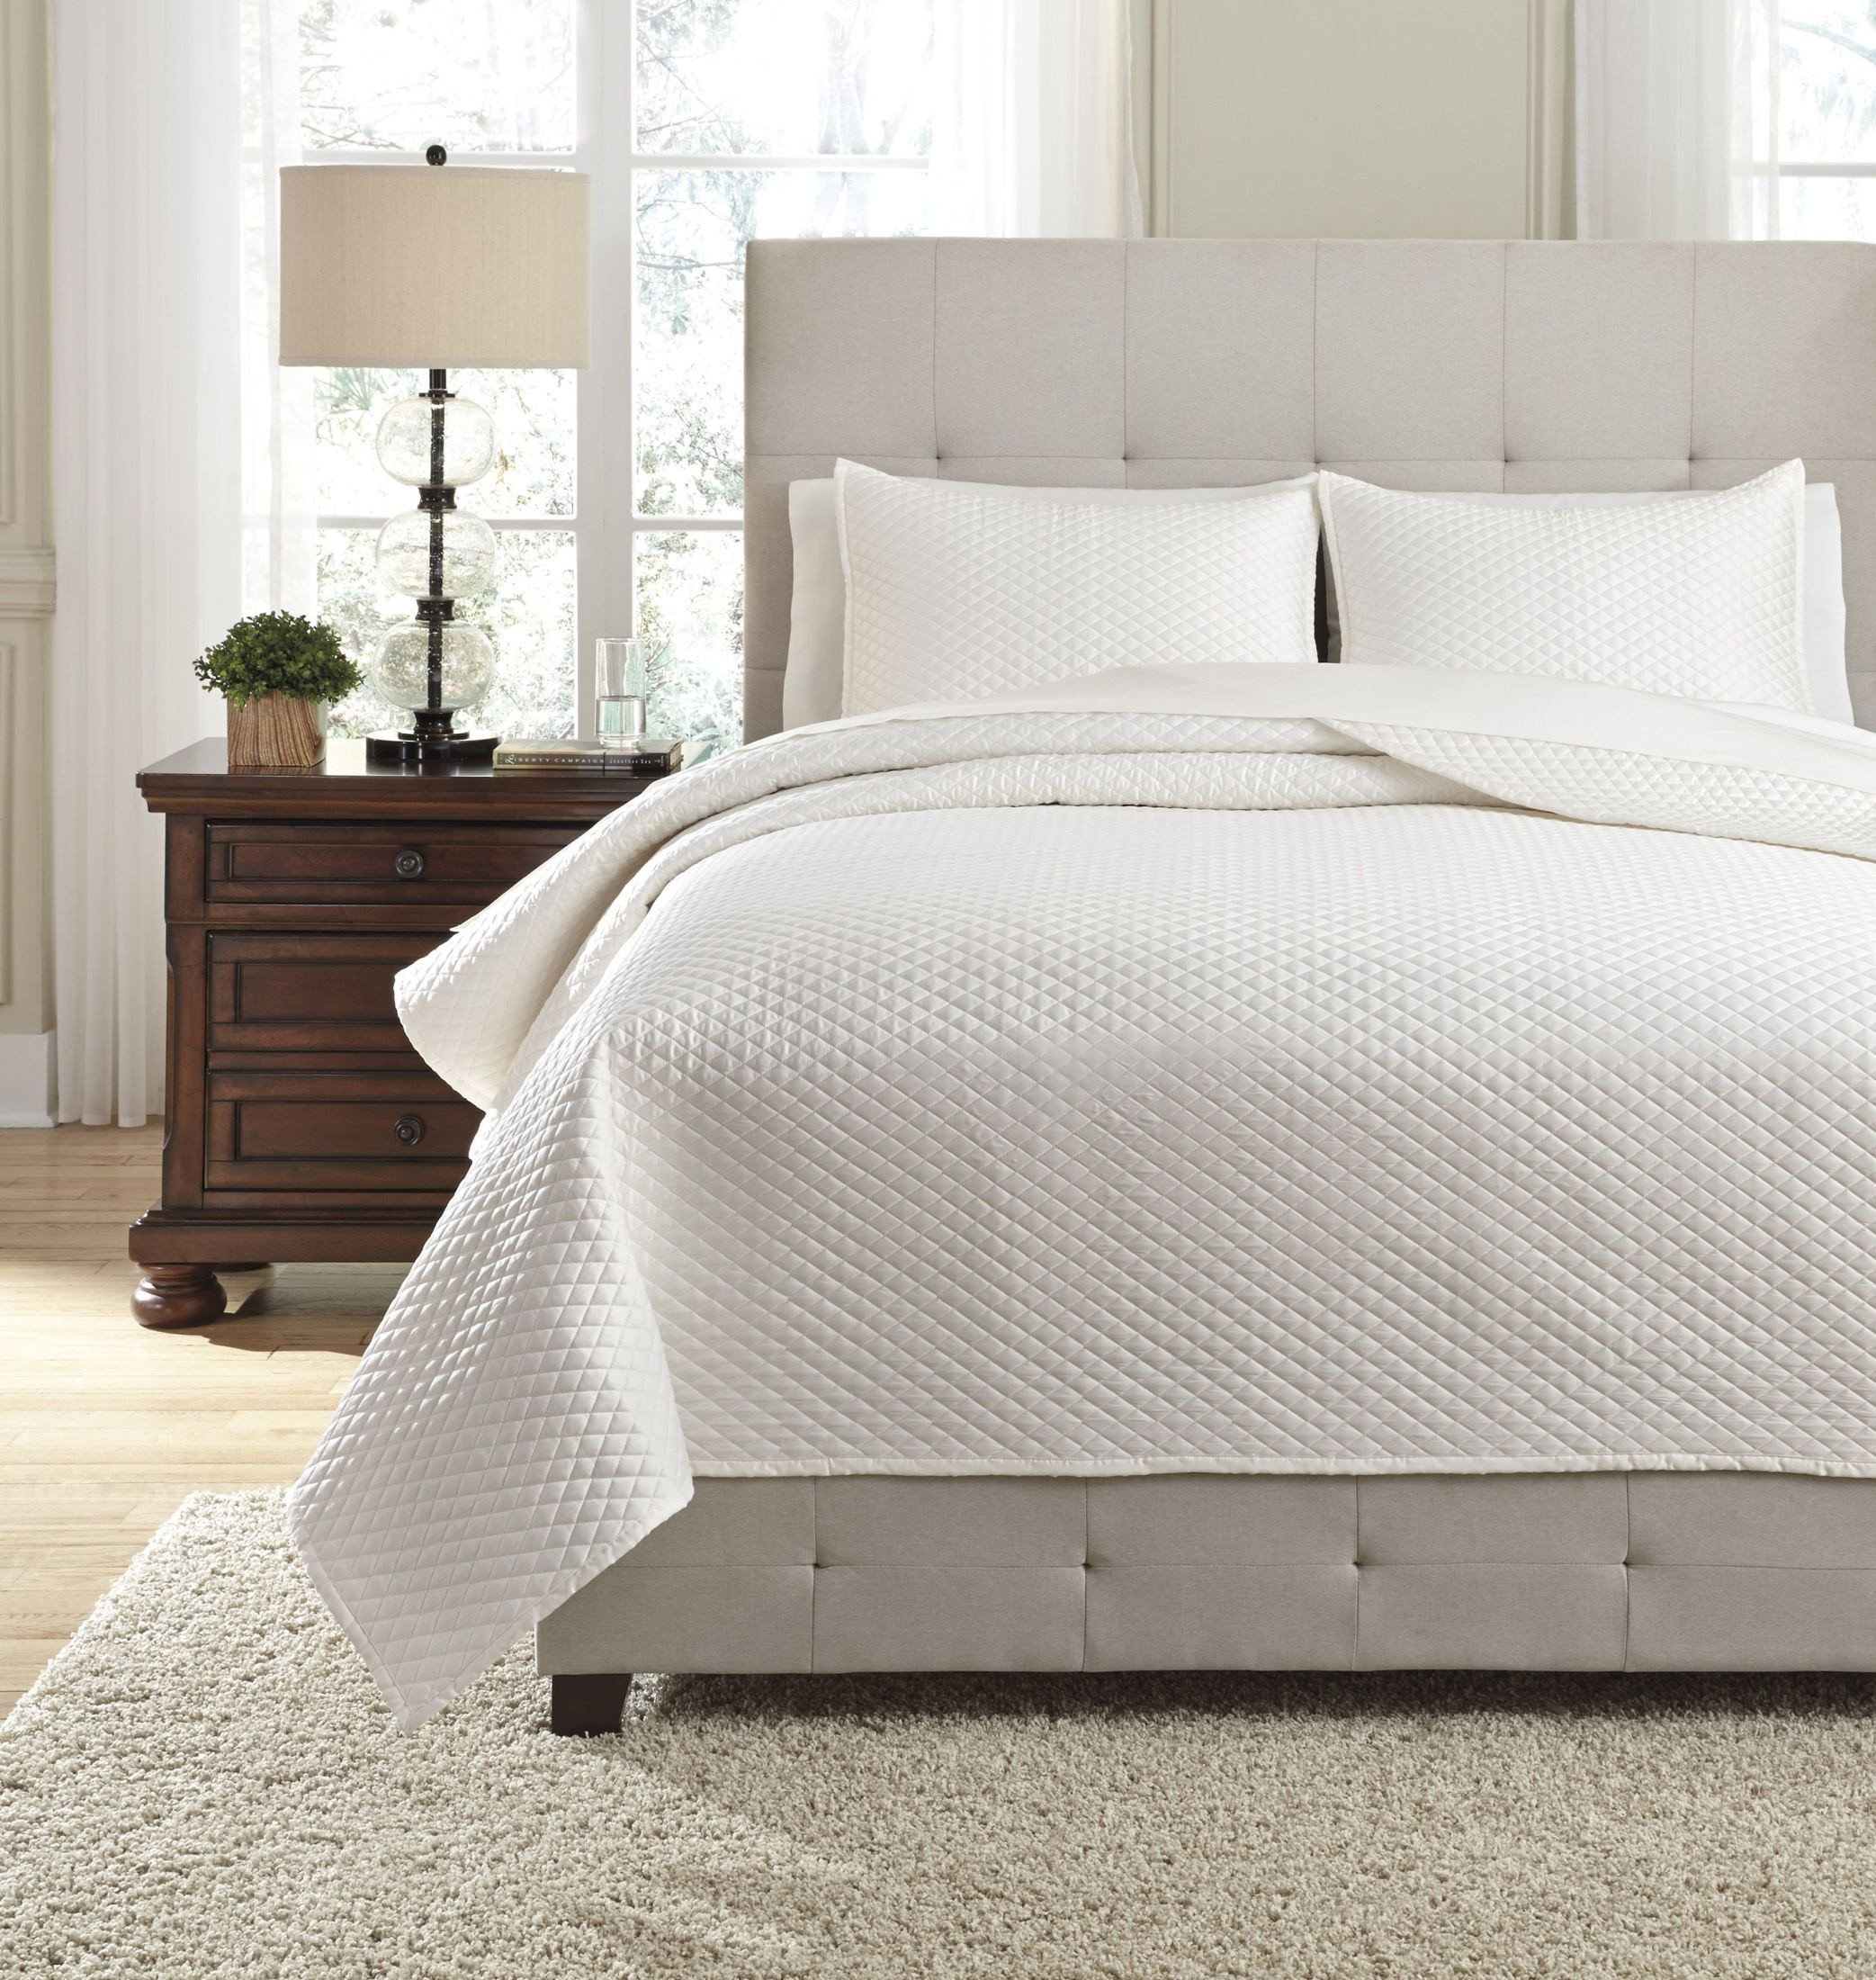 Dietrick ivory queen quilt set from ashley coleman furniture for Furniture 7 days to die